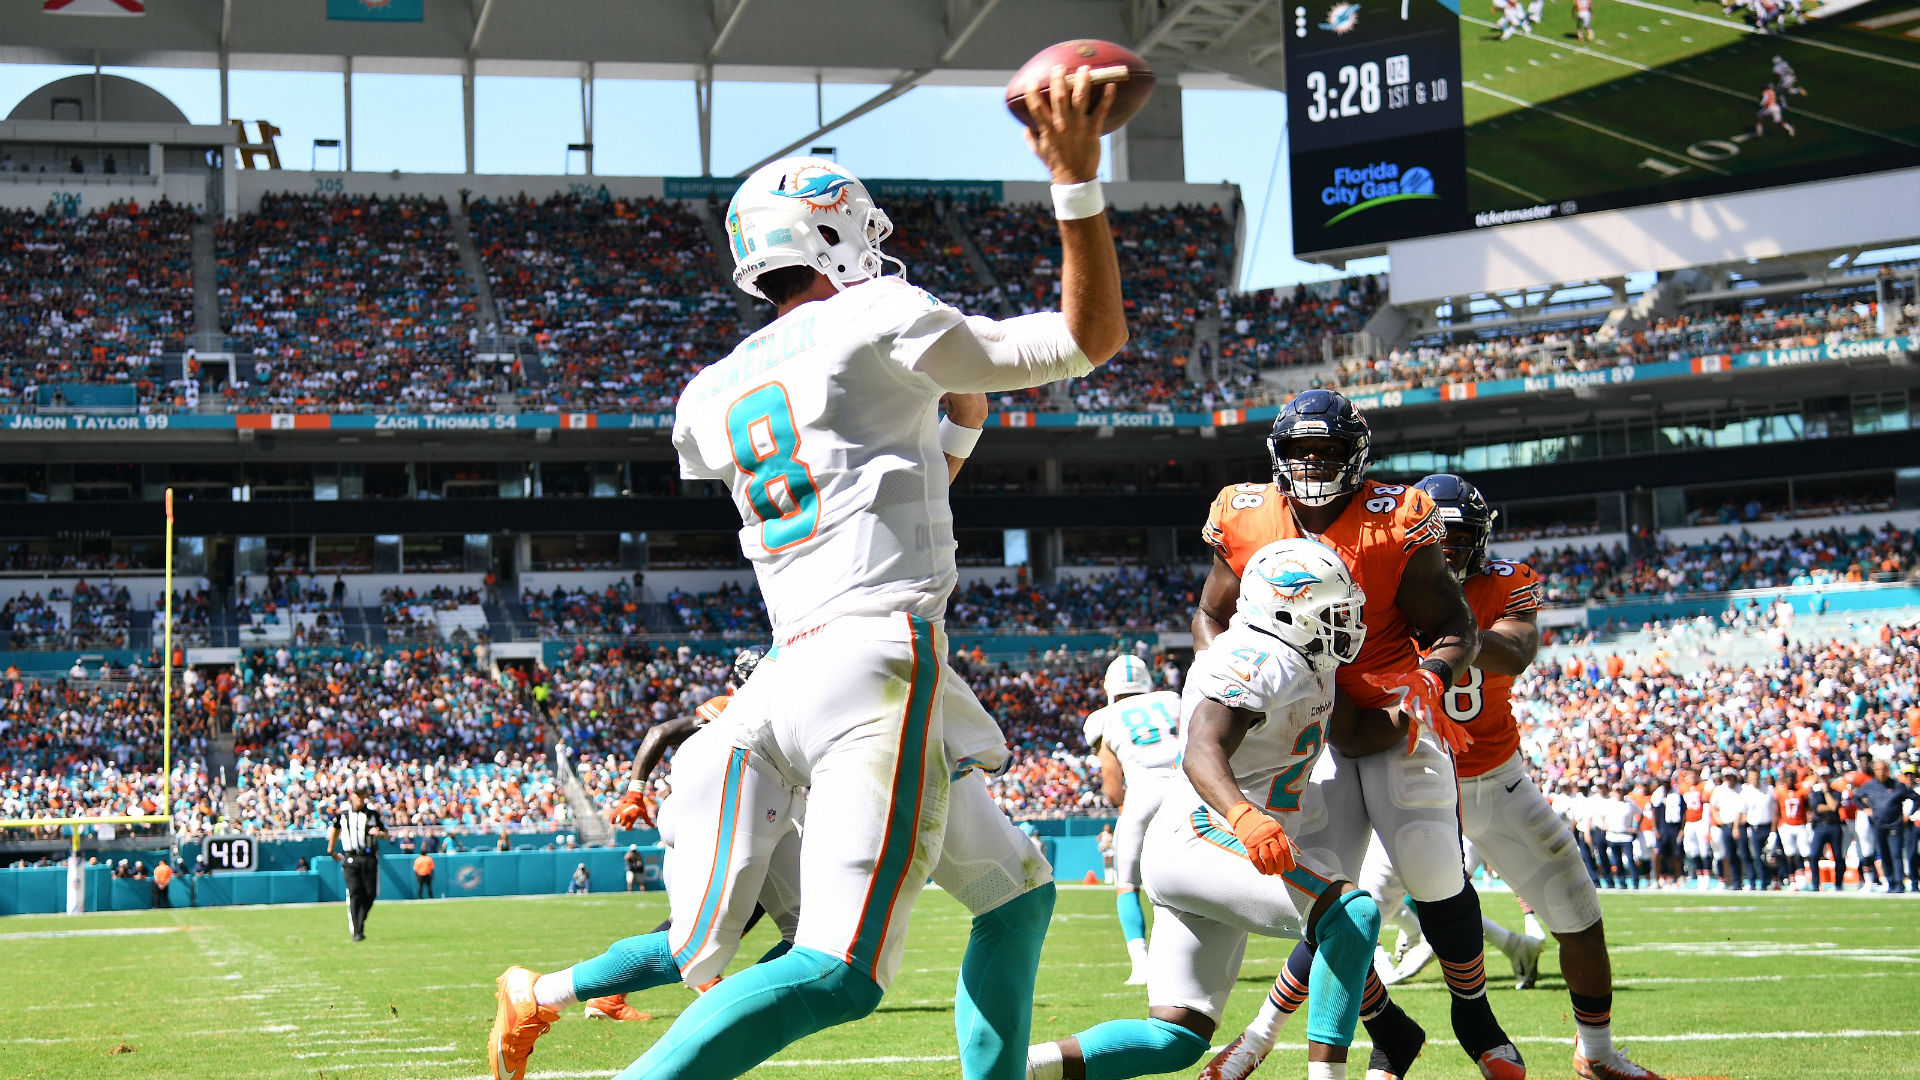 Dolphins QB Brock Osweiler to start Sunday, sparks '#Brocktober' hashtag on Twitter